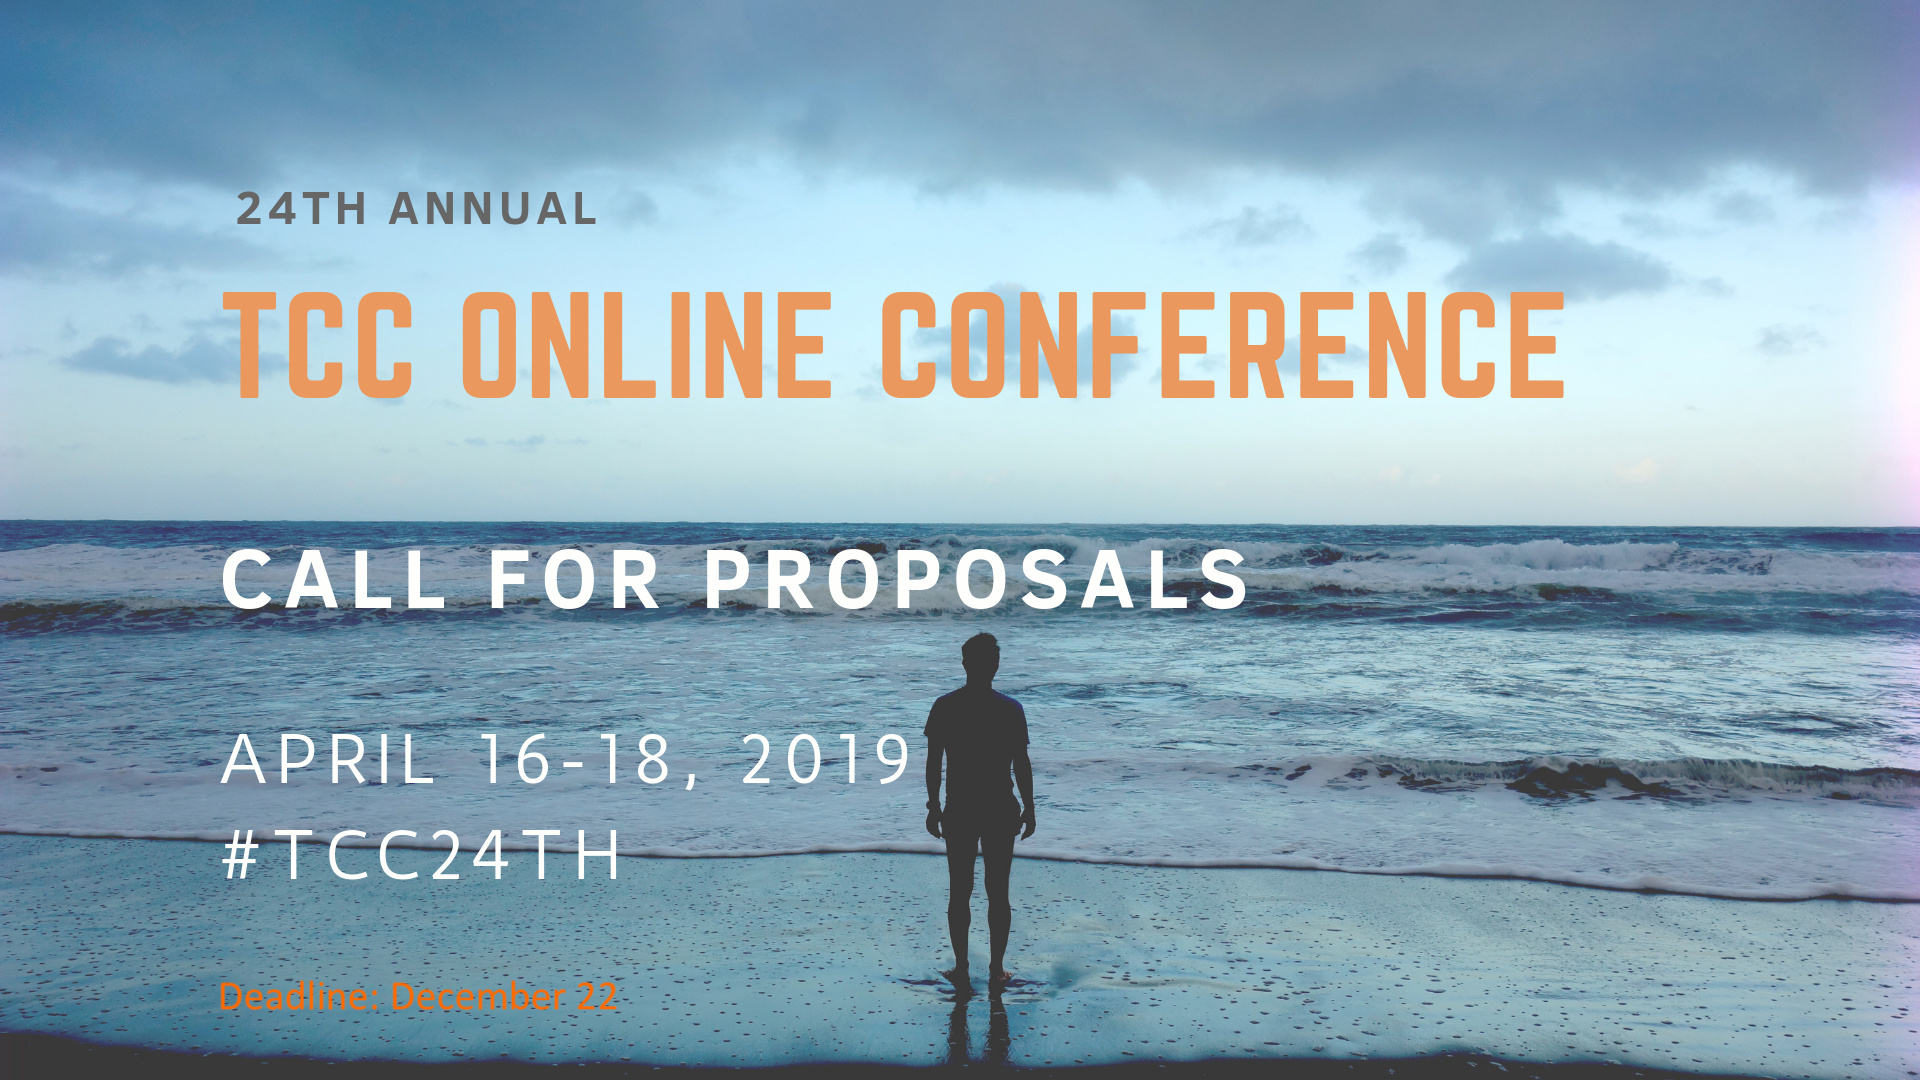 Graphic of man on beach looking at horizon. Announces 24th TCC Online Conference Call for Proposals Due December 22.